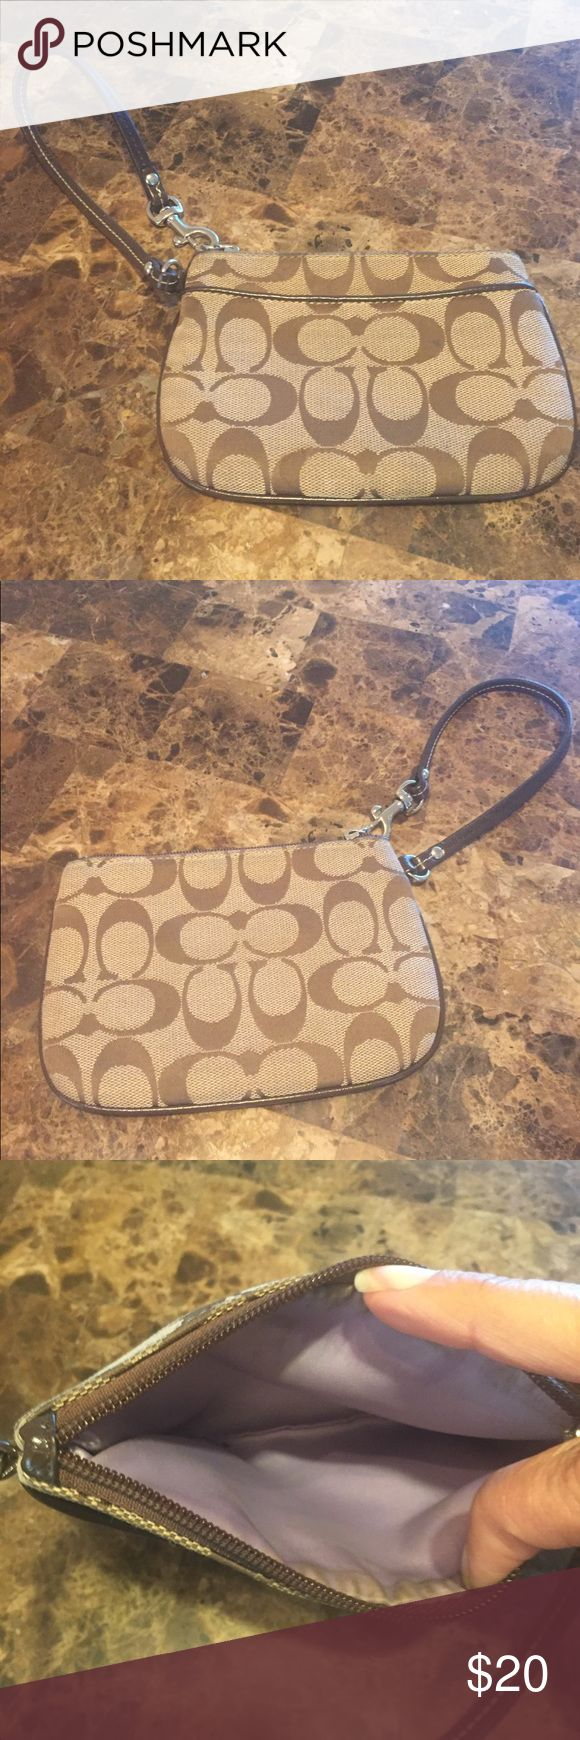 Coach wristlet Coach wristlet in good condition exterior is still nice the interior is purple and a bit dirty from the top edges Coach Bags Clutches & Wristlets